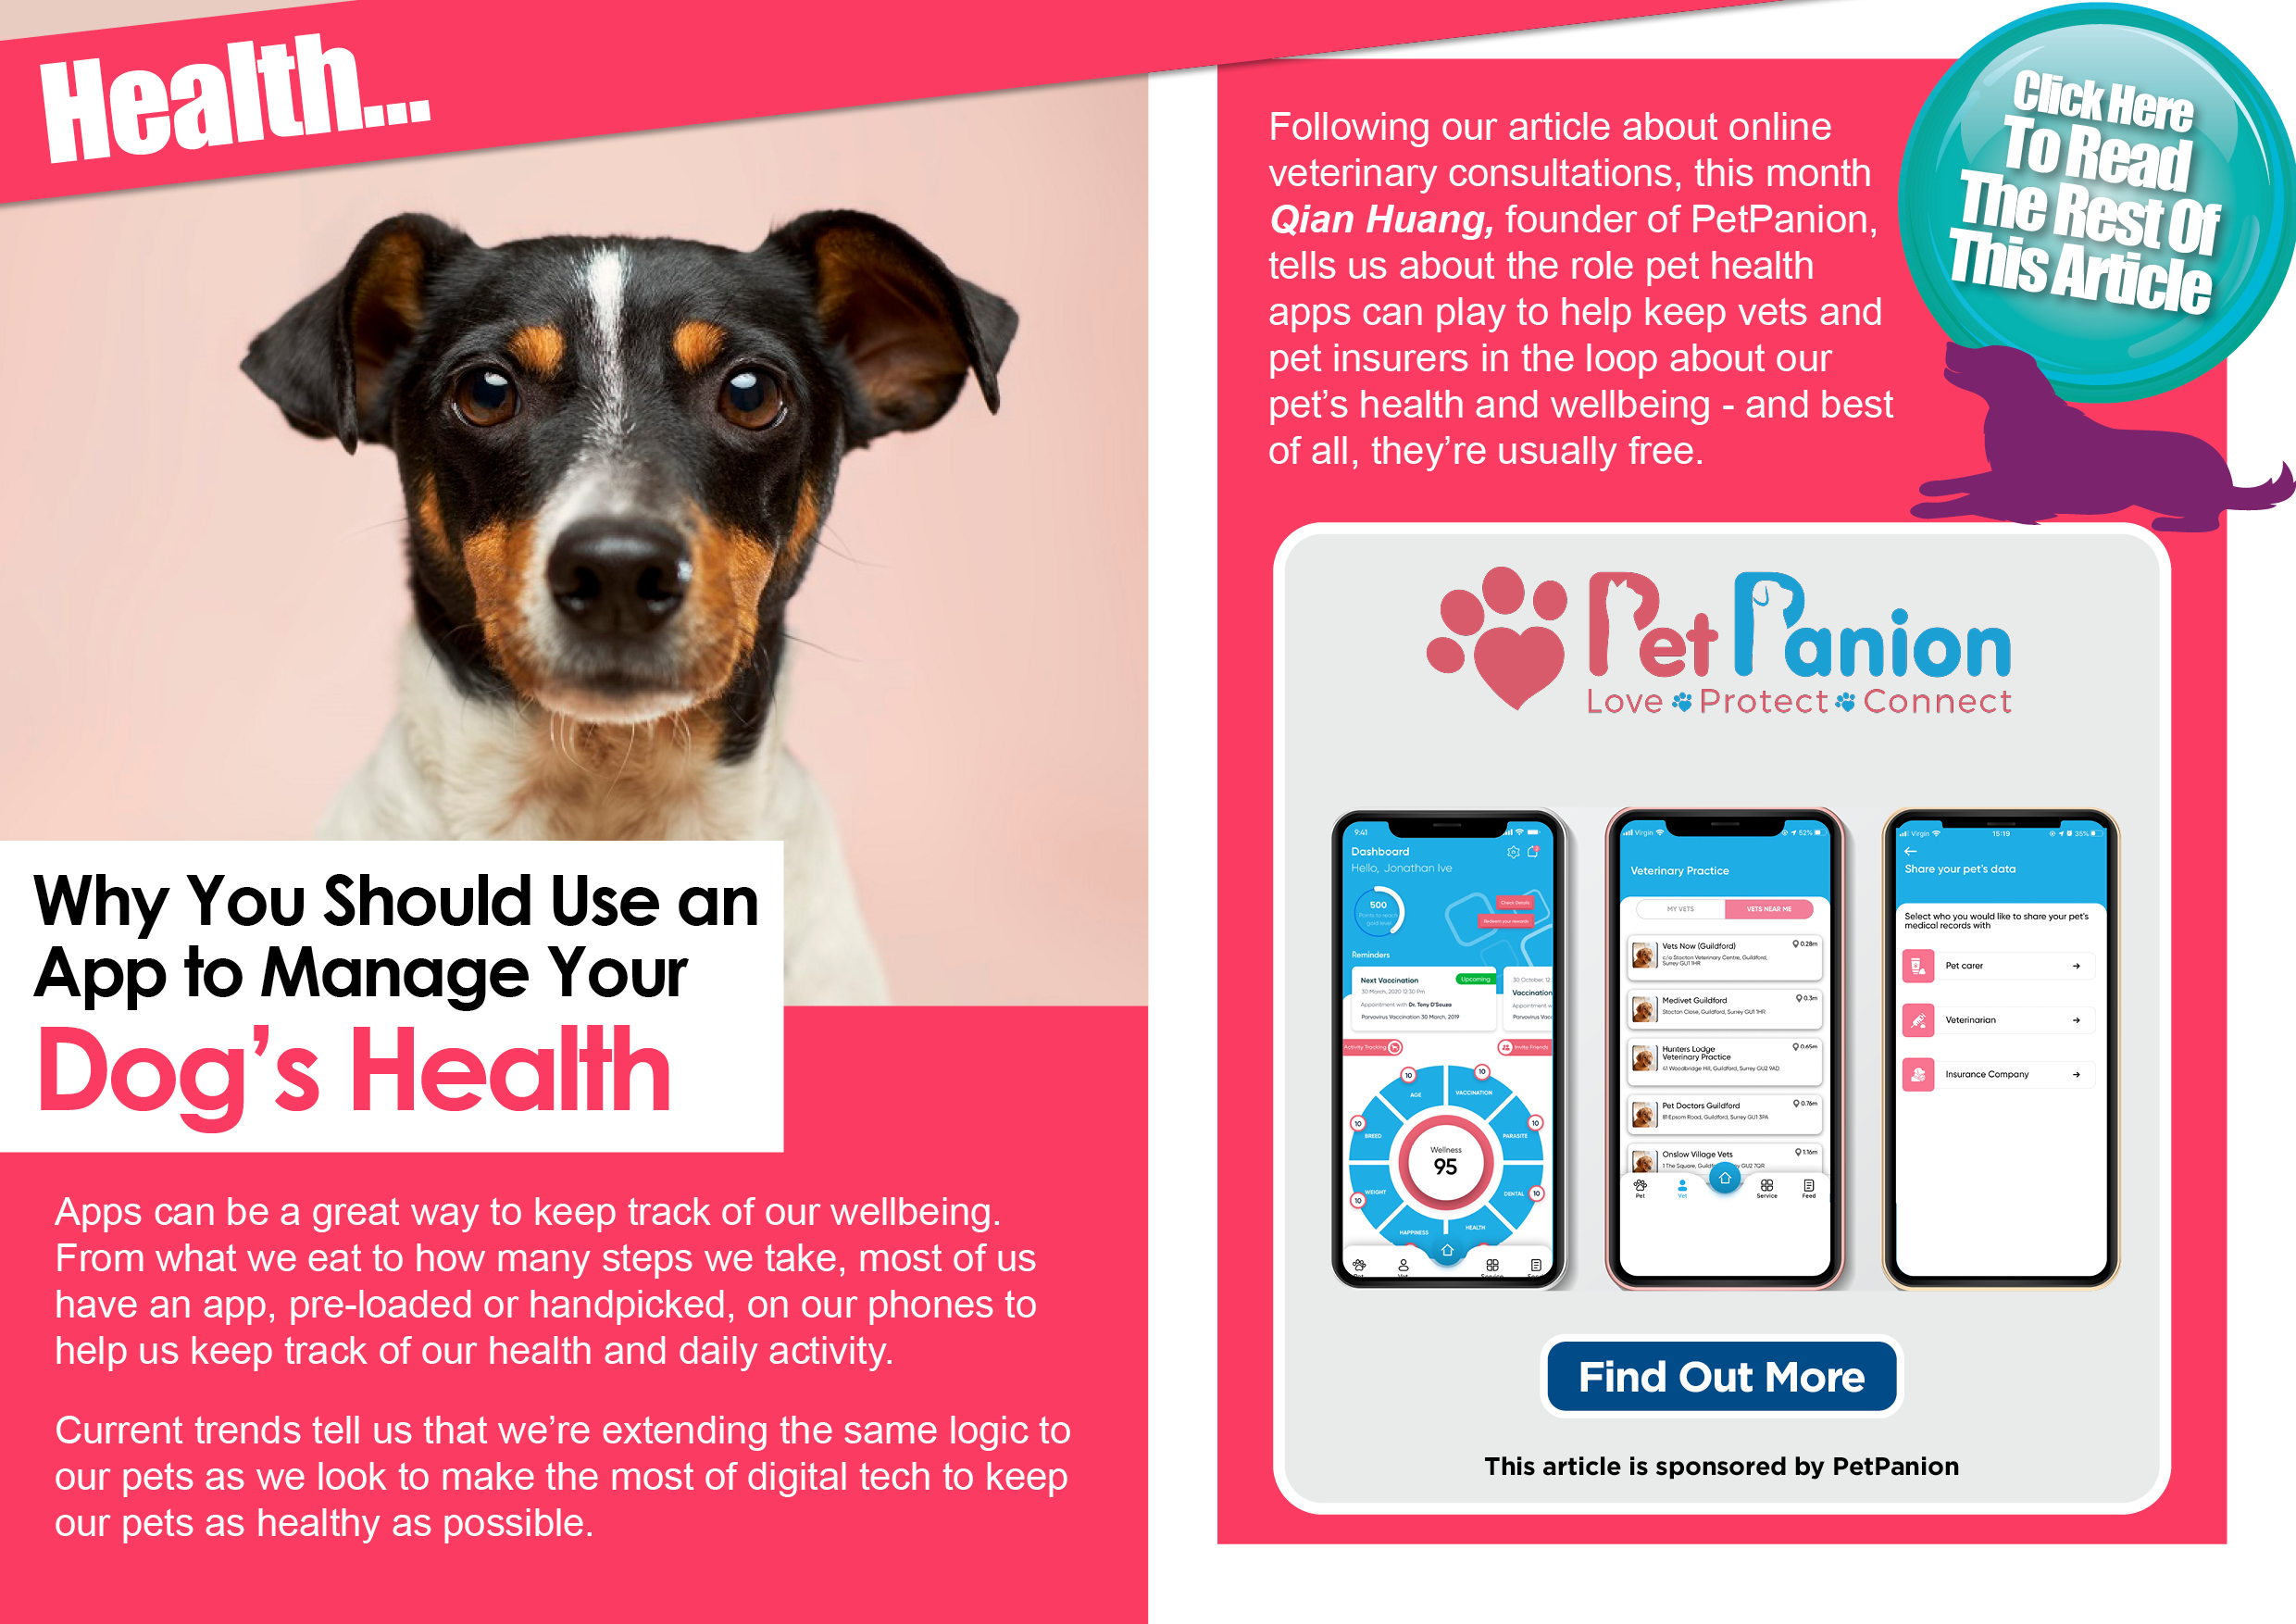 Use PetPanion app to control pet's health!